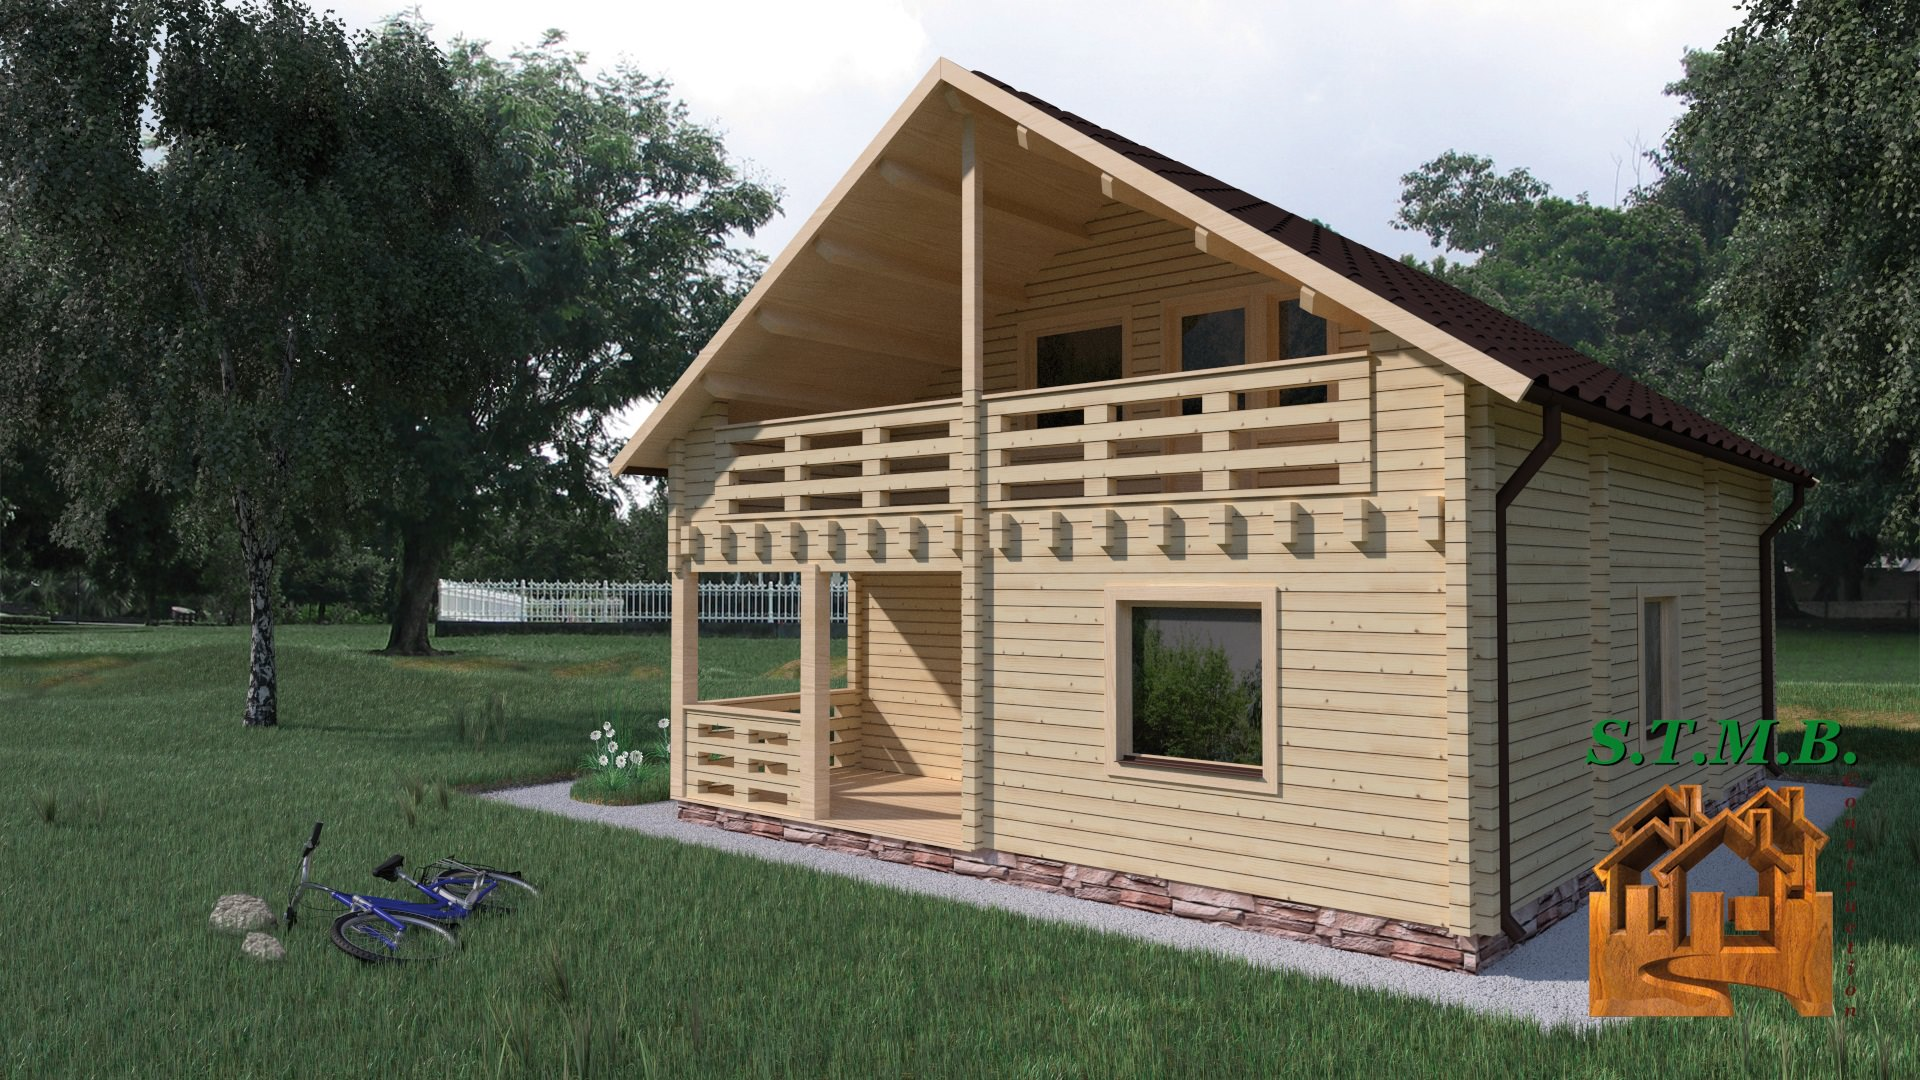 Une maison en kit pour un maximum de confort stmb for Construction maison rapide